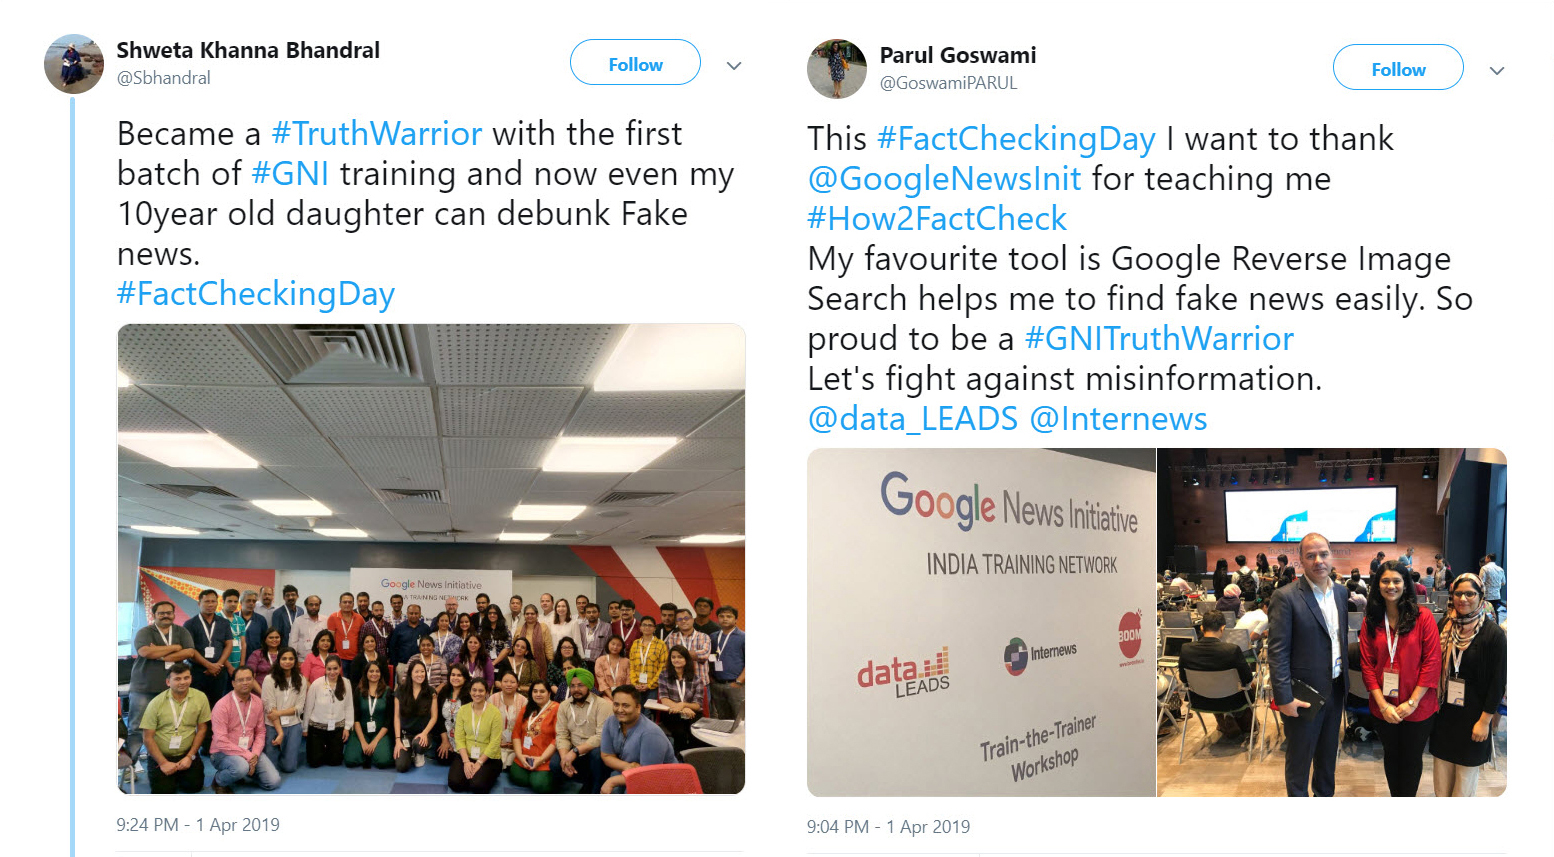 Tweet 1: Became a #TruthWarrior with the first batch of #GNI training and now even my 10 year old daughter can debunk Fake news. #FactCheckingDay. Tweet 2: This #FactCheckingDay I want to thank @GoogleNewsInit for teaching me #How2FactCheck. My favourite tool is Google Reverse image Search helps me find fake news easily. So proud to be a #GNITruthWarrior. Let us fight against misinformation. @data_LEADS @Internews